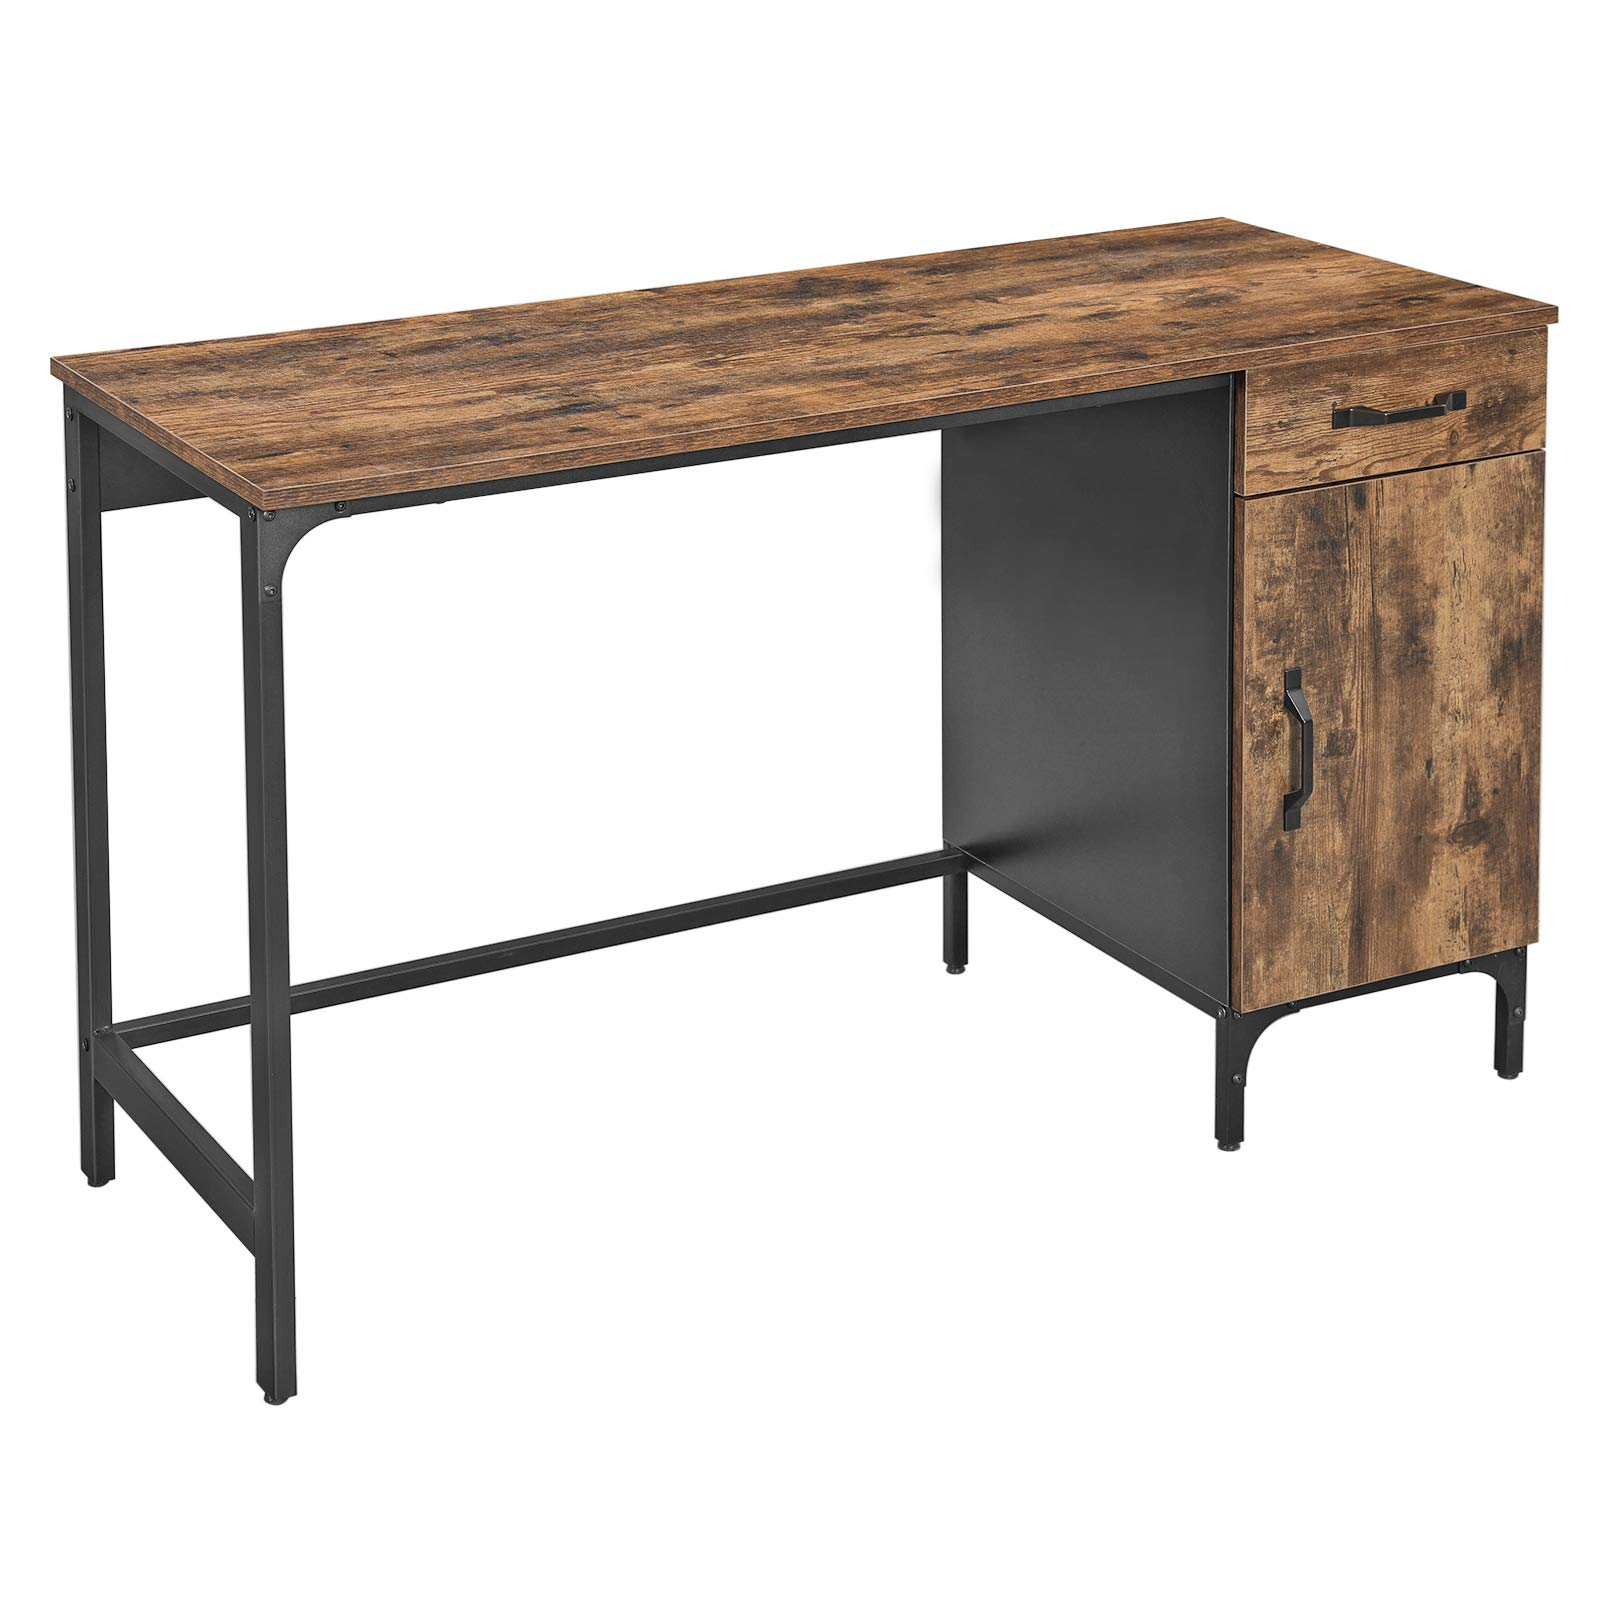 VASAGLE Computer Desk, Writing Desk for Study, Office Desk with Drawer and Cabinet, Home Office, Living Room, Bedroom, Study, Simple Assembly, Metal, Industrial Design, Rustic Brown LWD51X